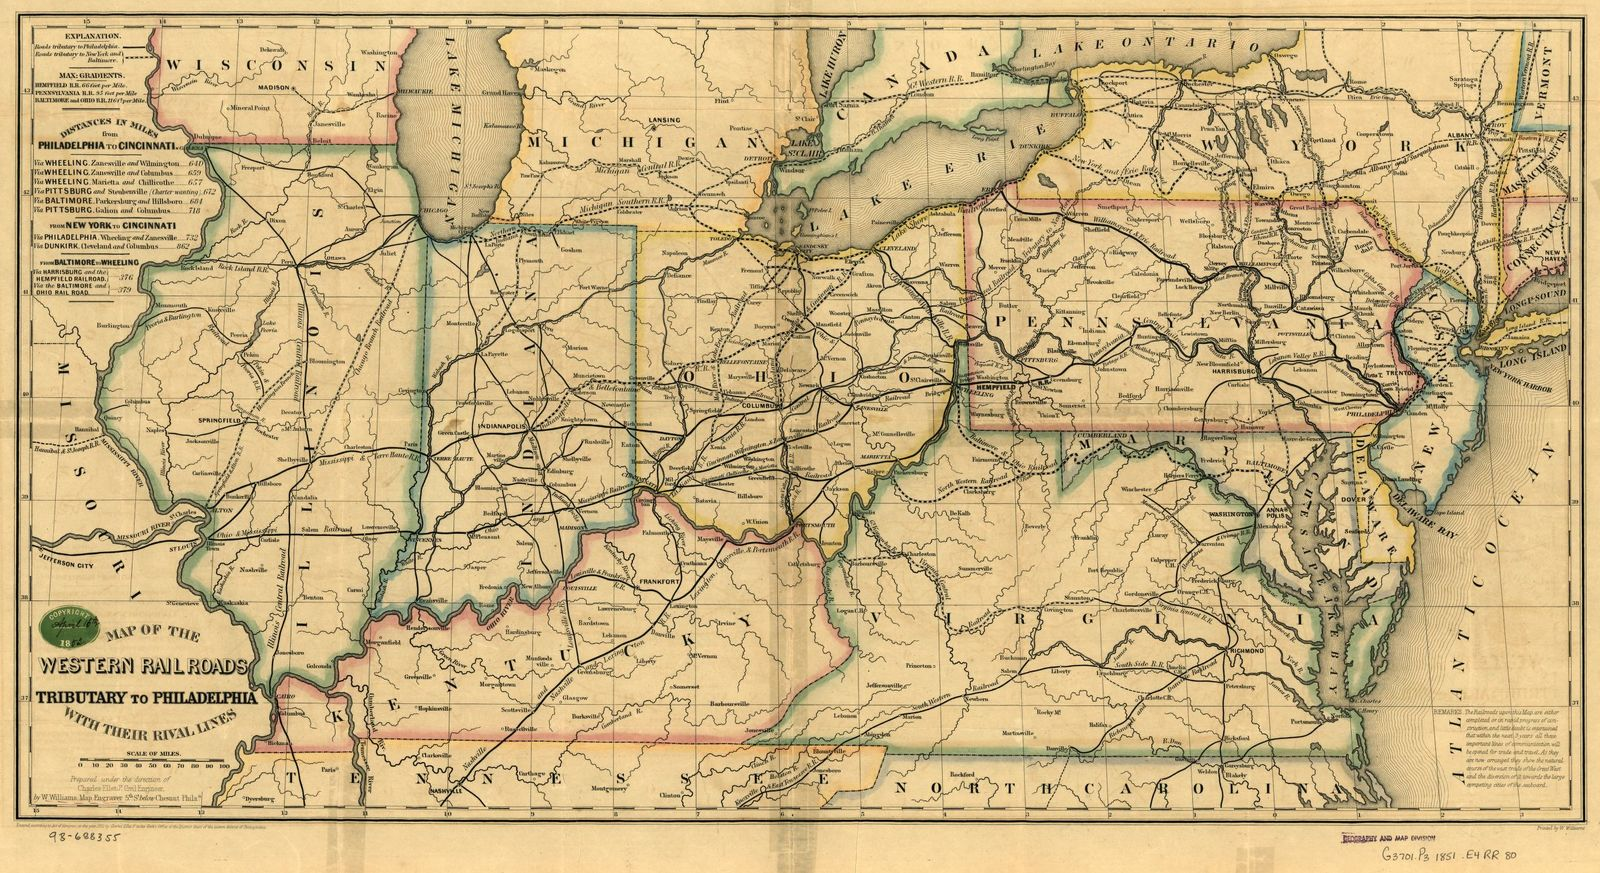 Map of the western railroads tributary to Philadelphia, with their rival lines; prepared under the direction of Charles Ellet Jr., Civil Engineer.